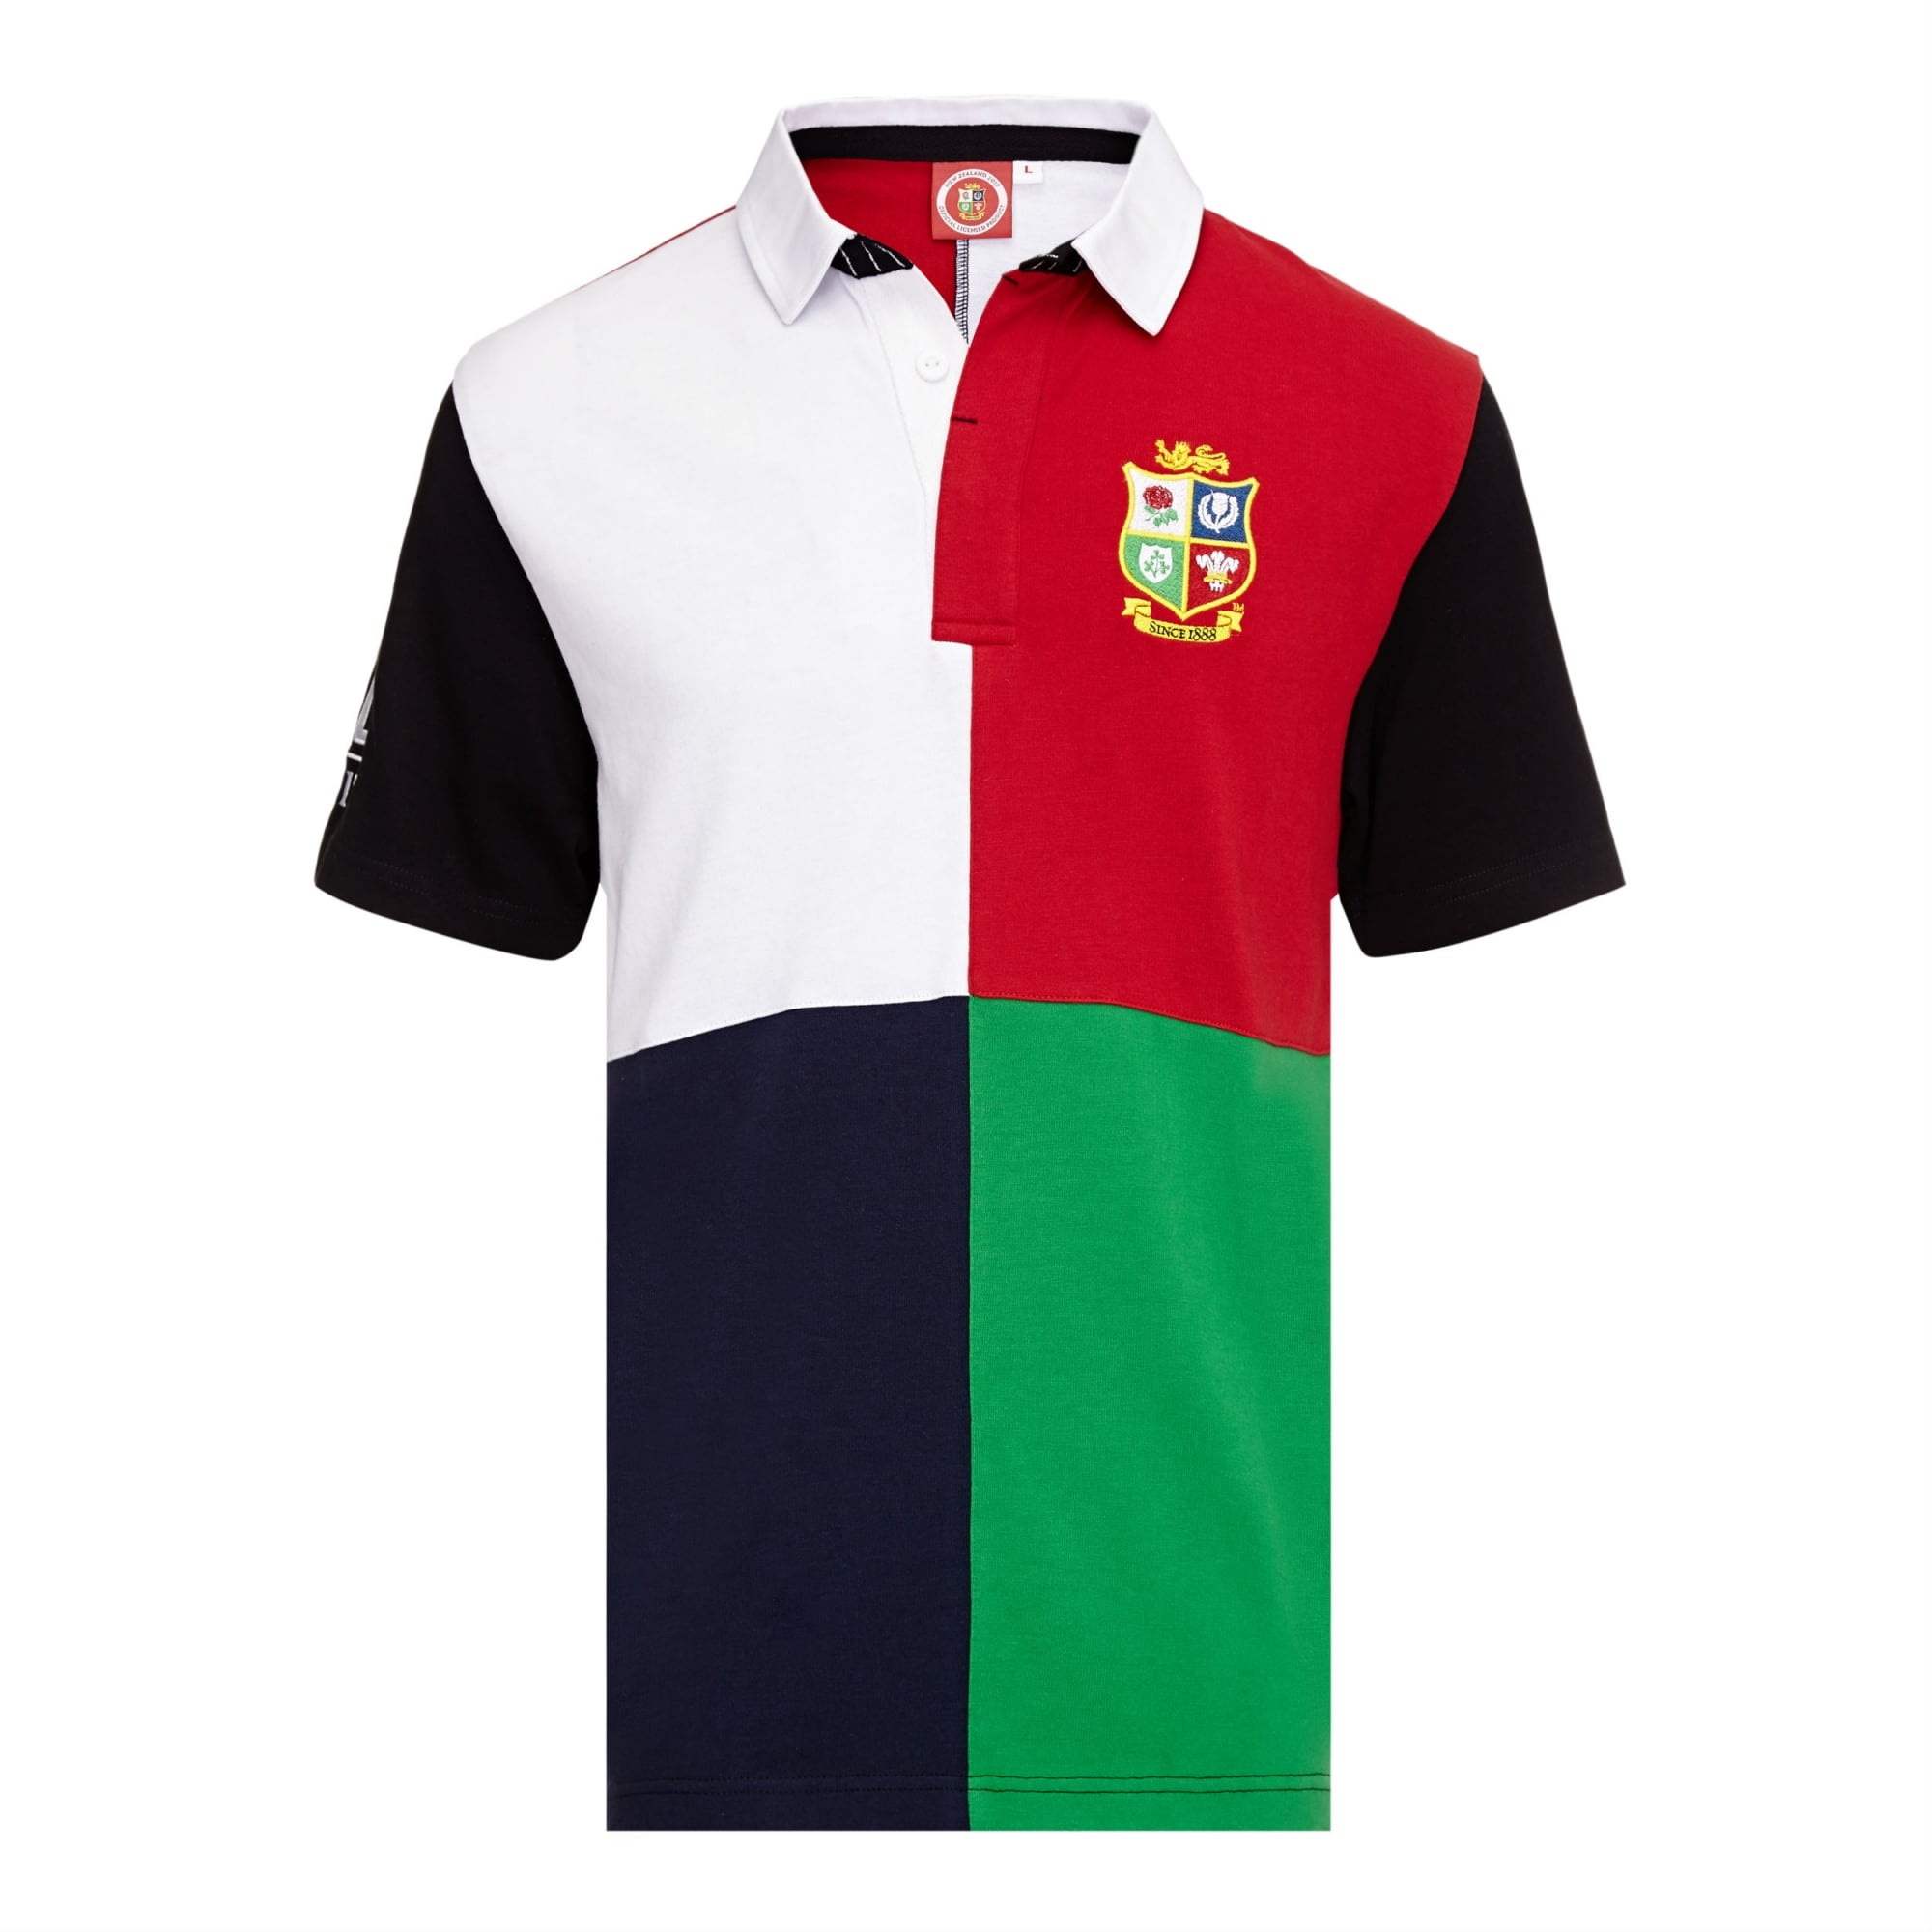 Official Lions Tour 2017 Harlequin Multi Short Sleeve Rugby Shirt